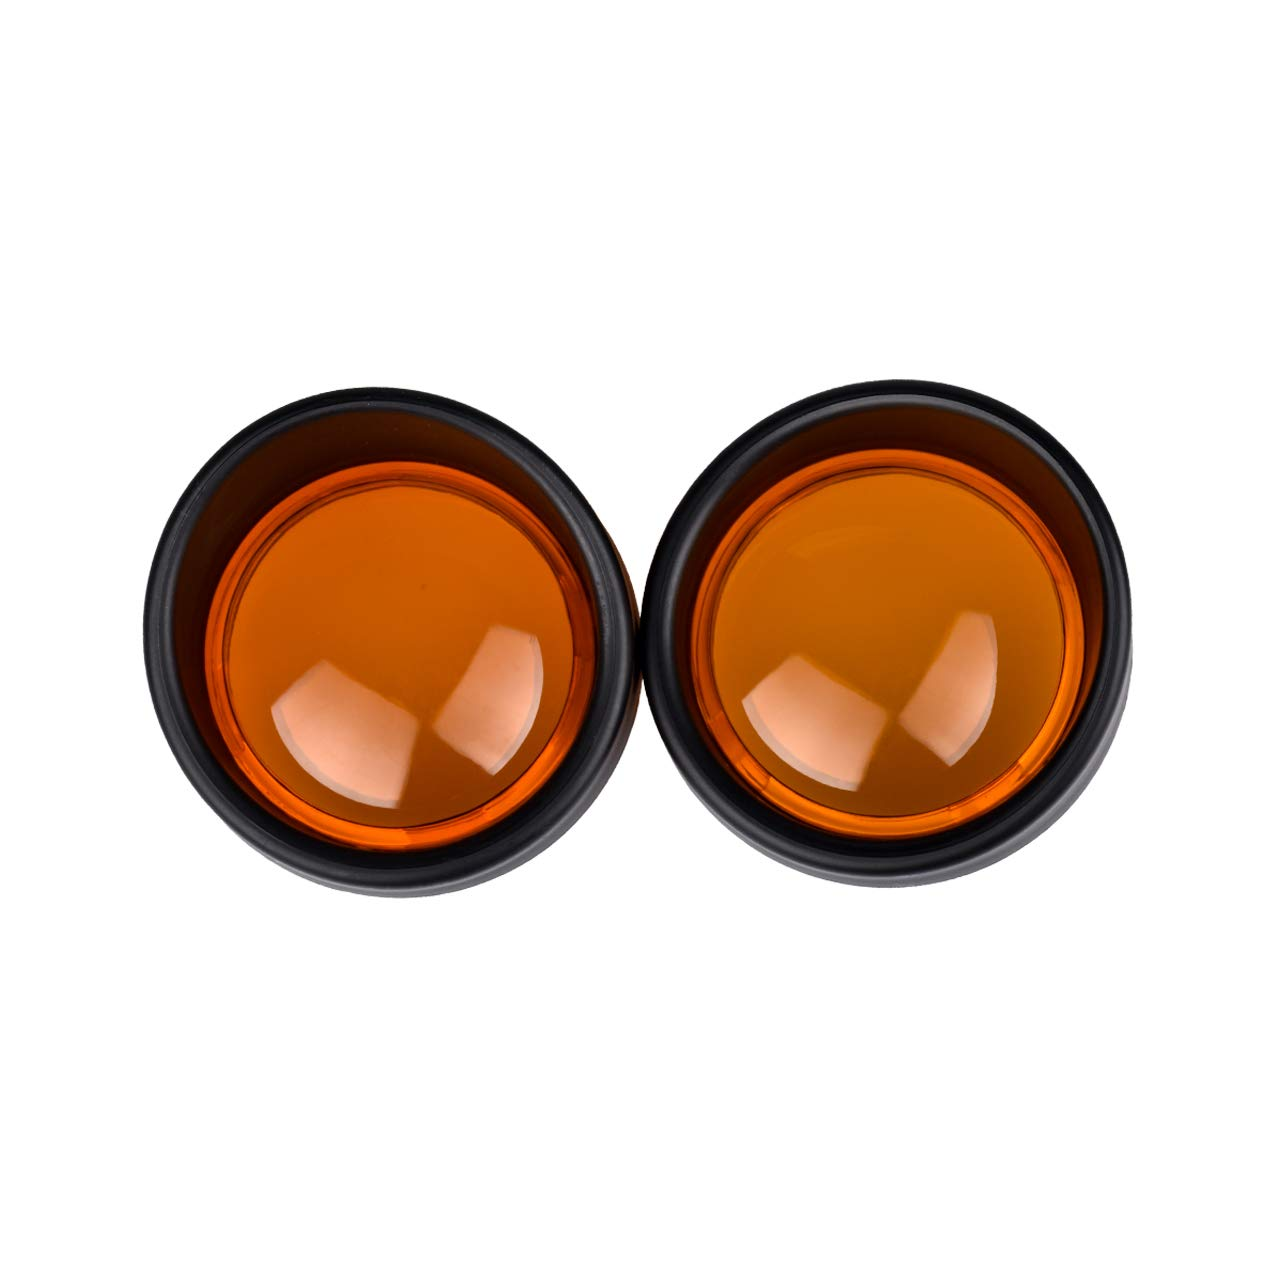 TUINCYN Black Motorcycle Turn Signal Bezels Visor-Style with Orange Lens Cover for Harley Sportster 883 1200 XL 48 72 Fatboy Dyna V-Rod Breakout Softail FLST/FLSTC (Pack of 2)